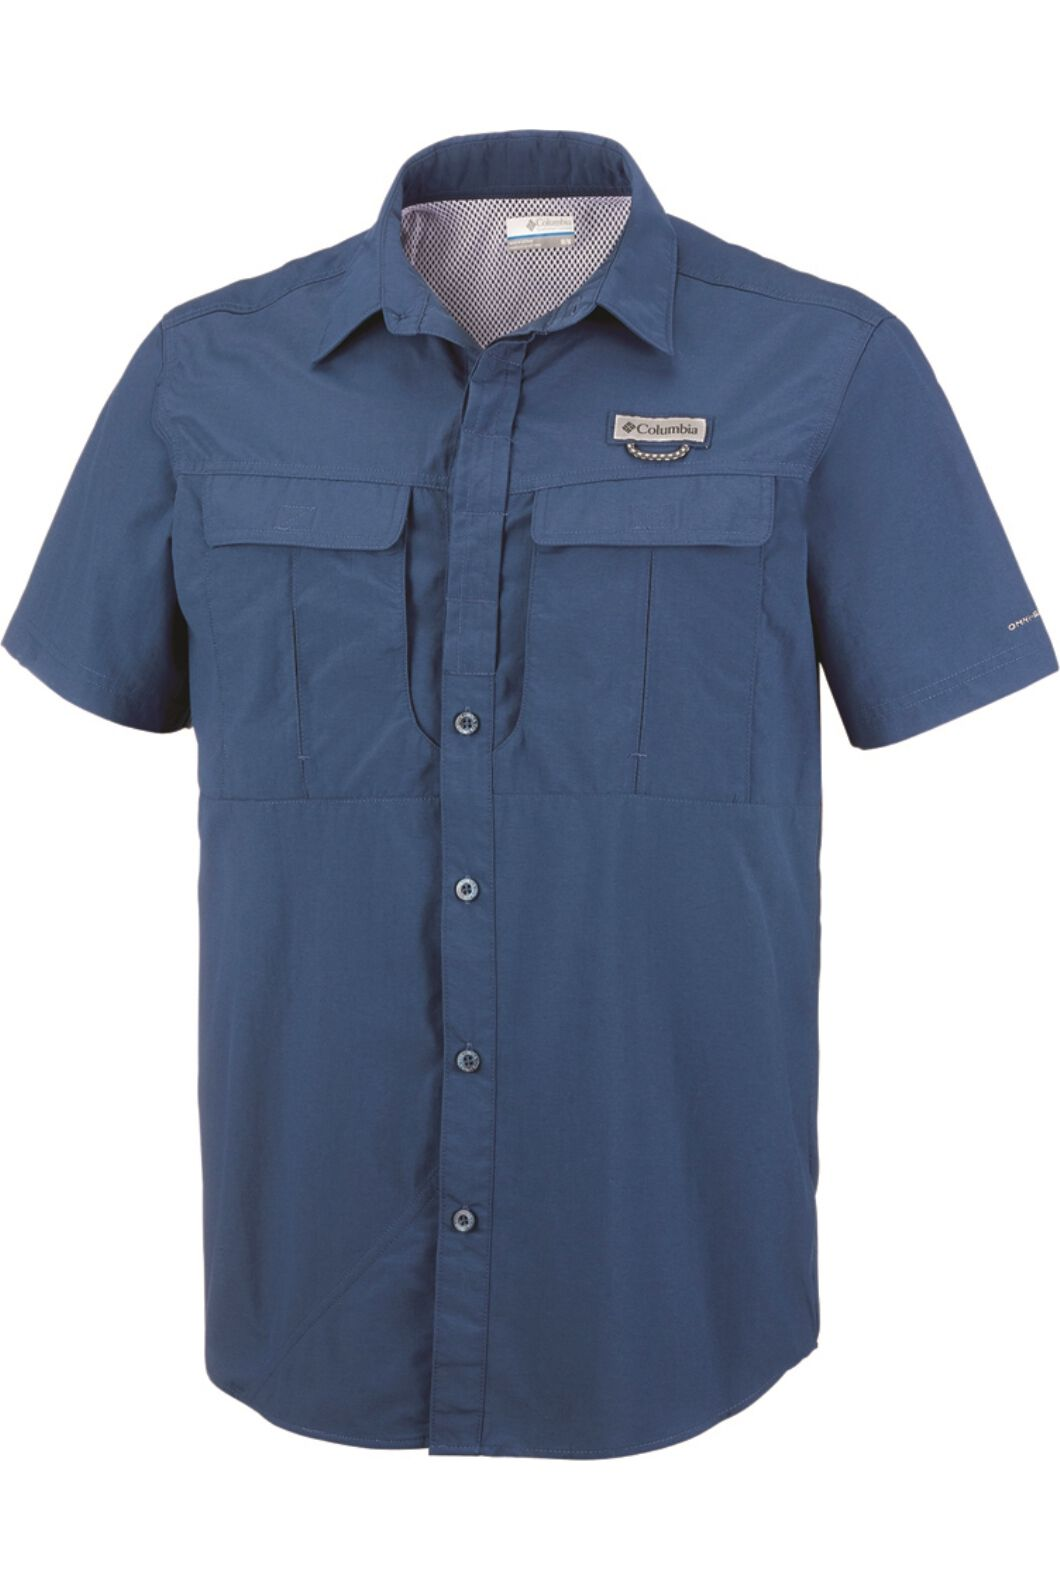 Columbia Men's Cascades Explorer Shirt, Carbon, hi-res